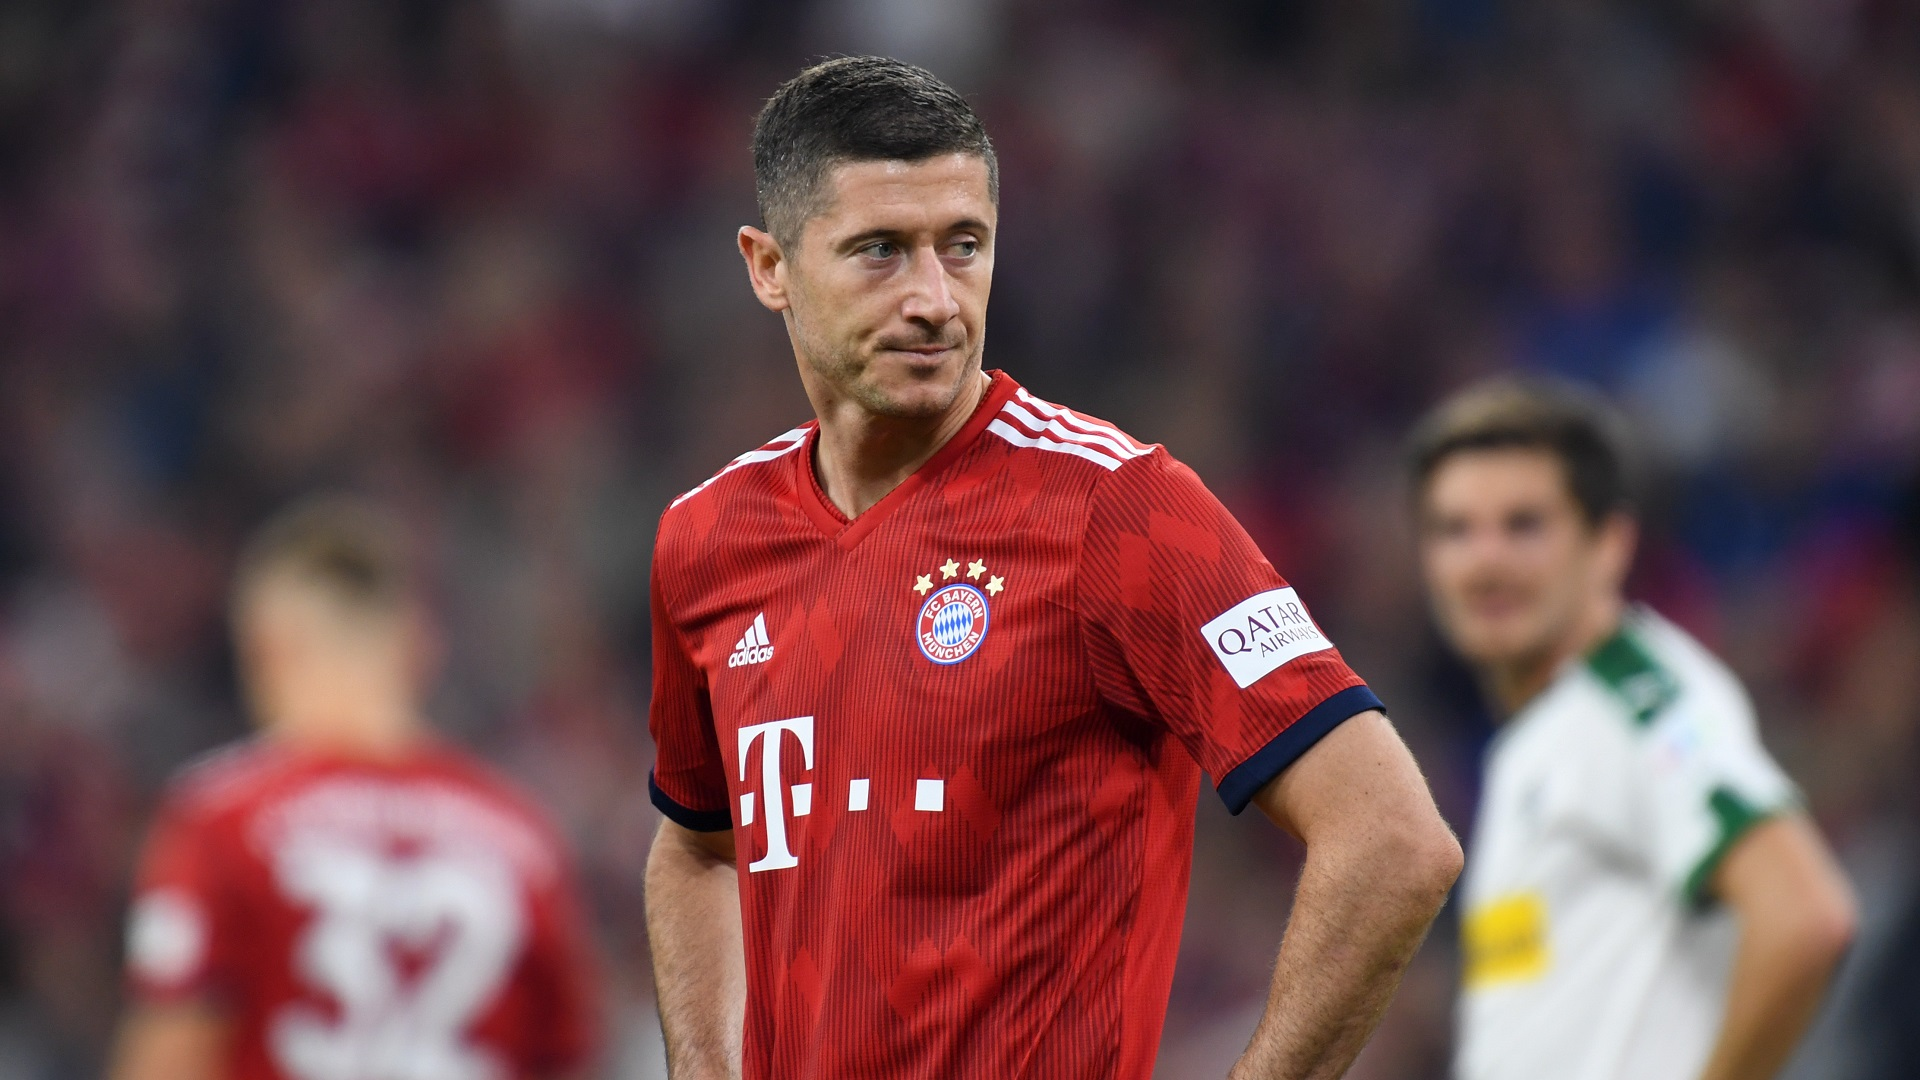 Bayern Munich call in media briefing amid Niko Kovac pressure